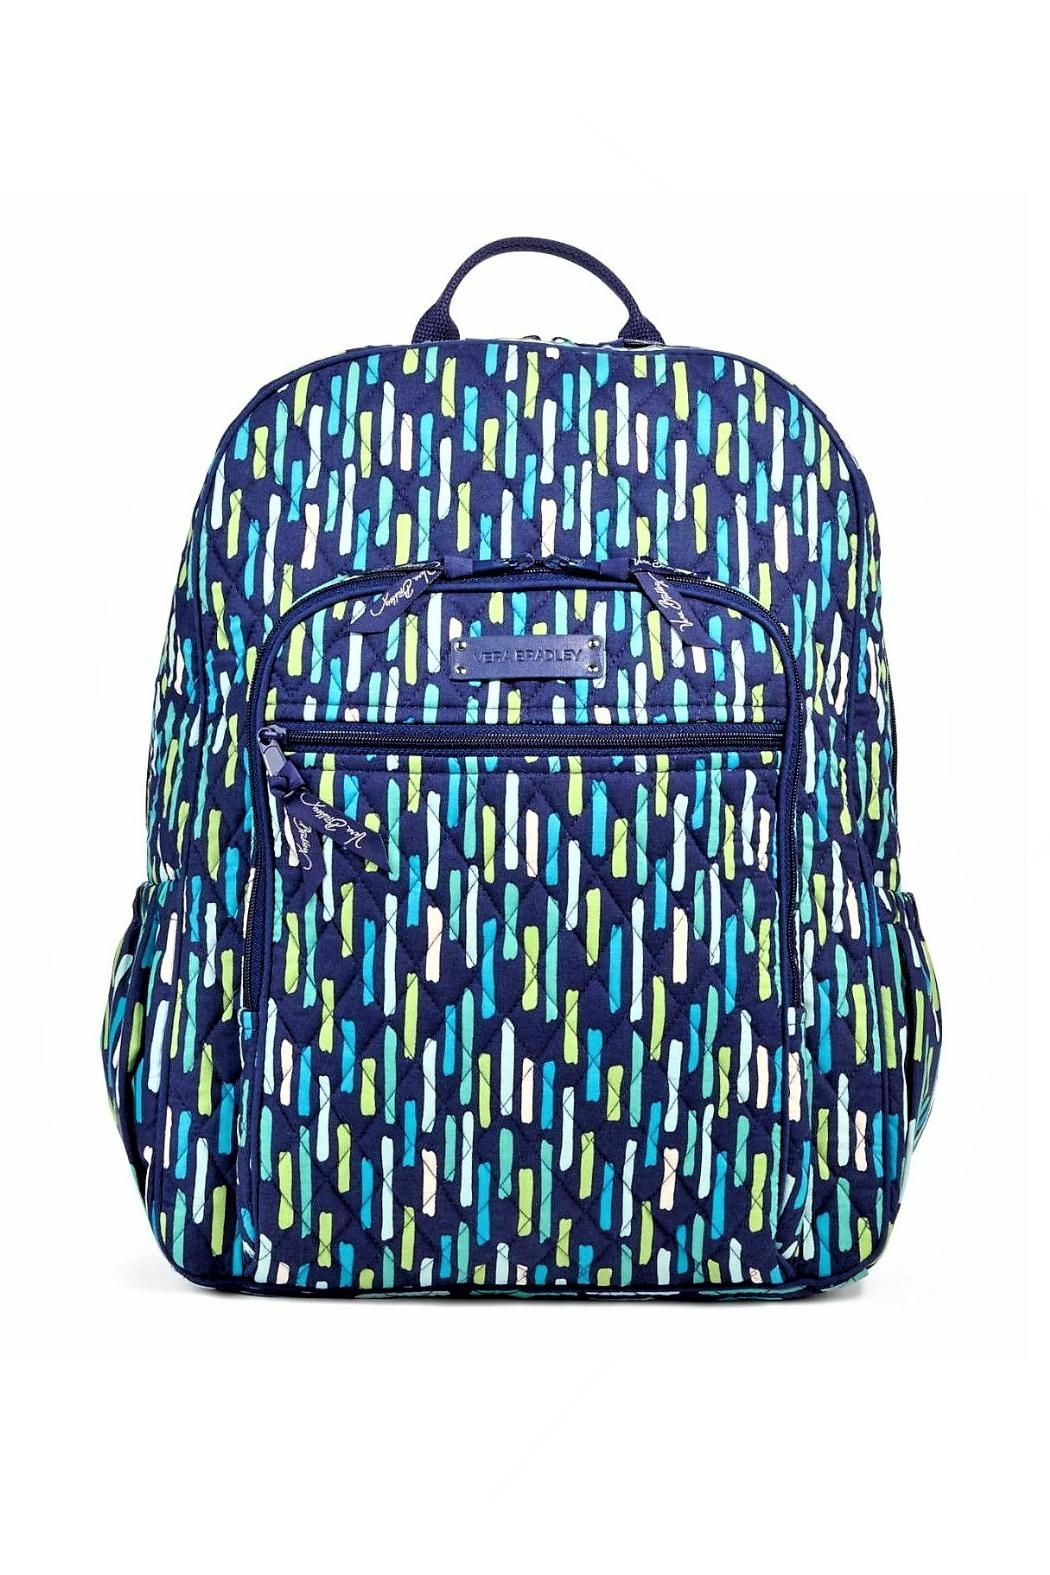 298cc5572c Vera Bradley Katalina Showers Campus Backpack - Front Cropped Image